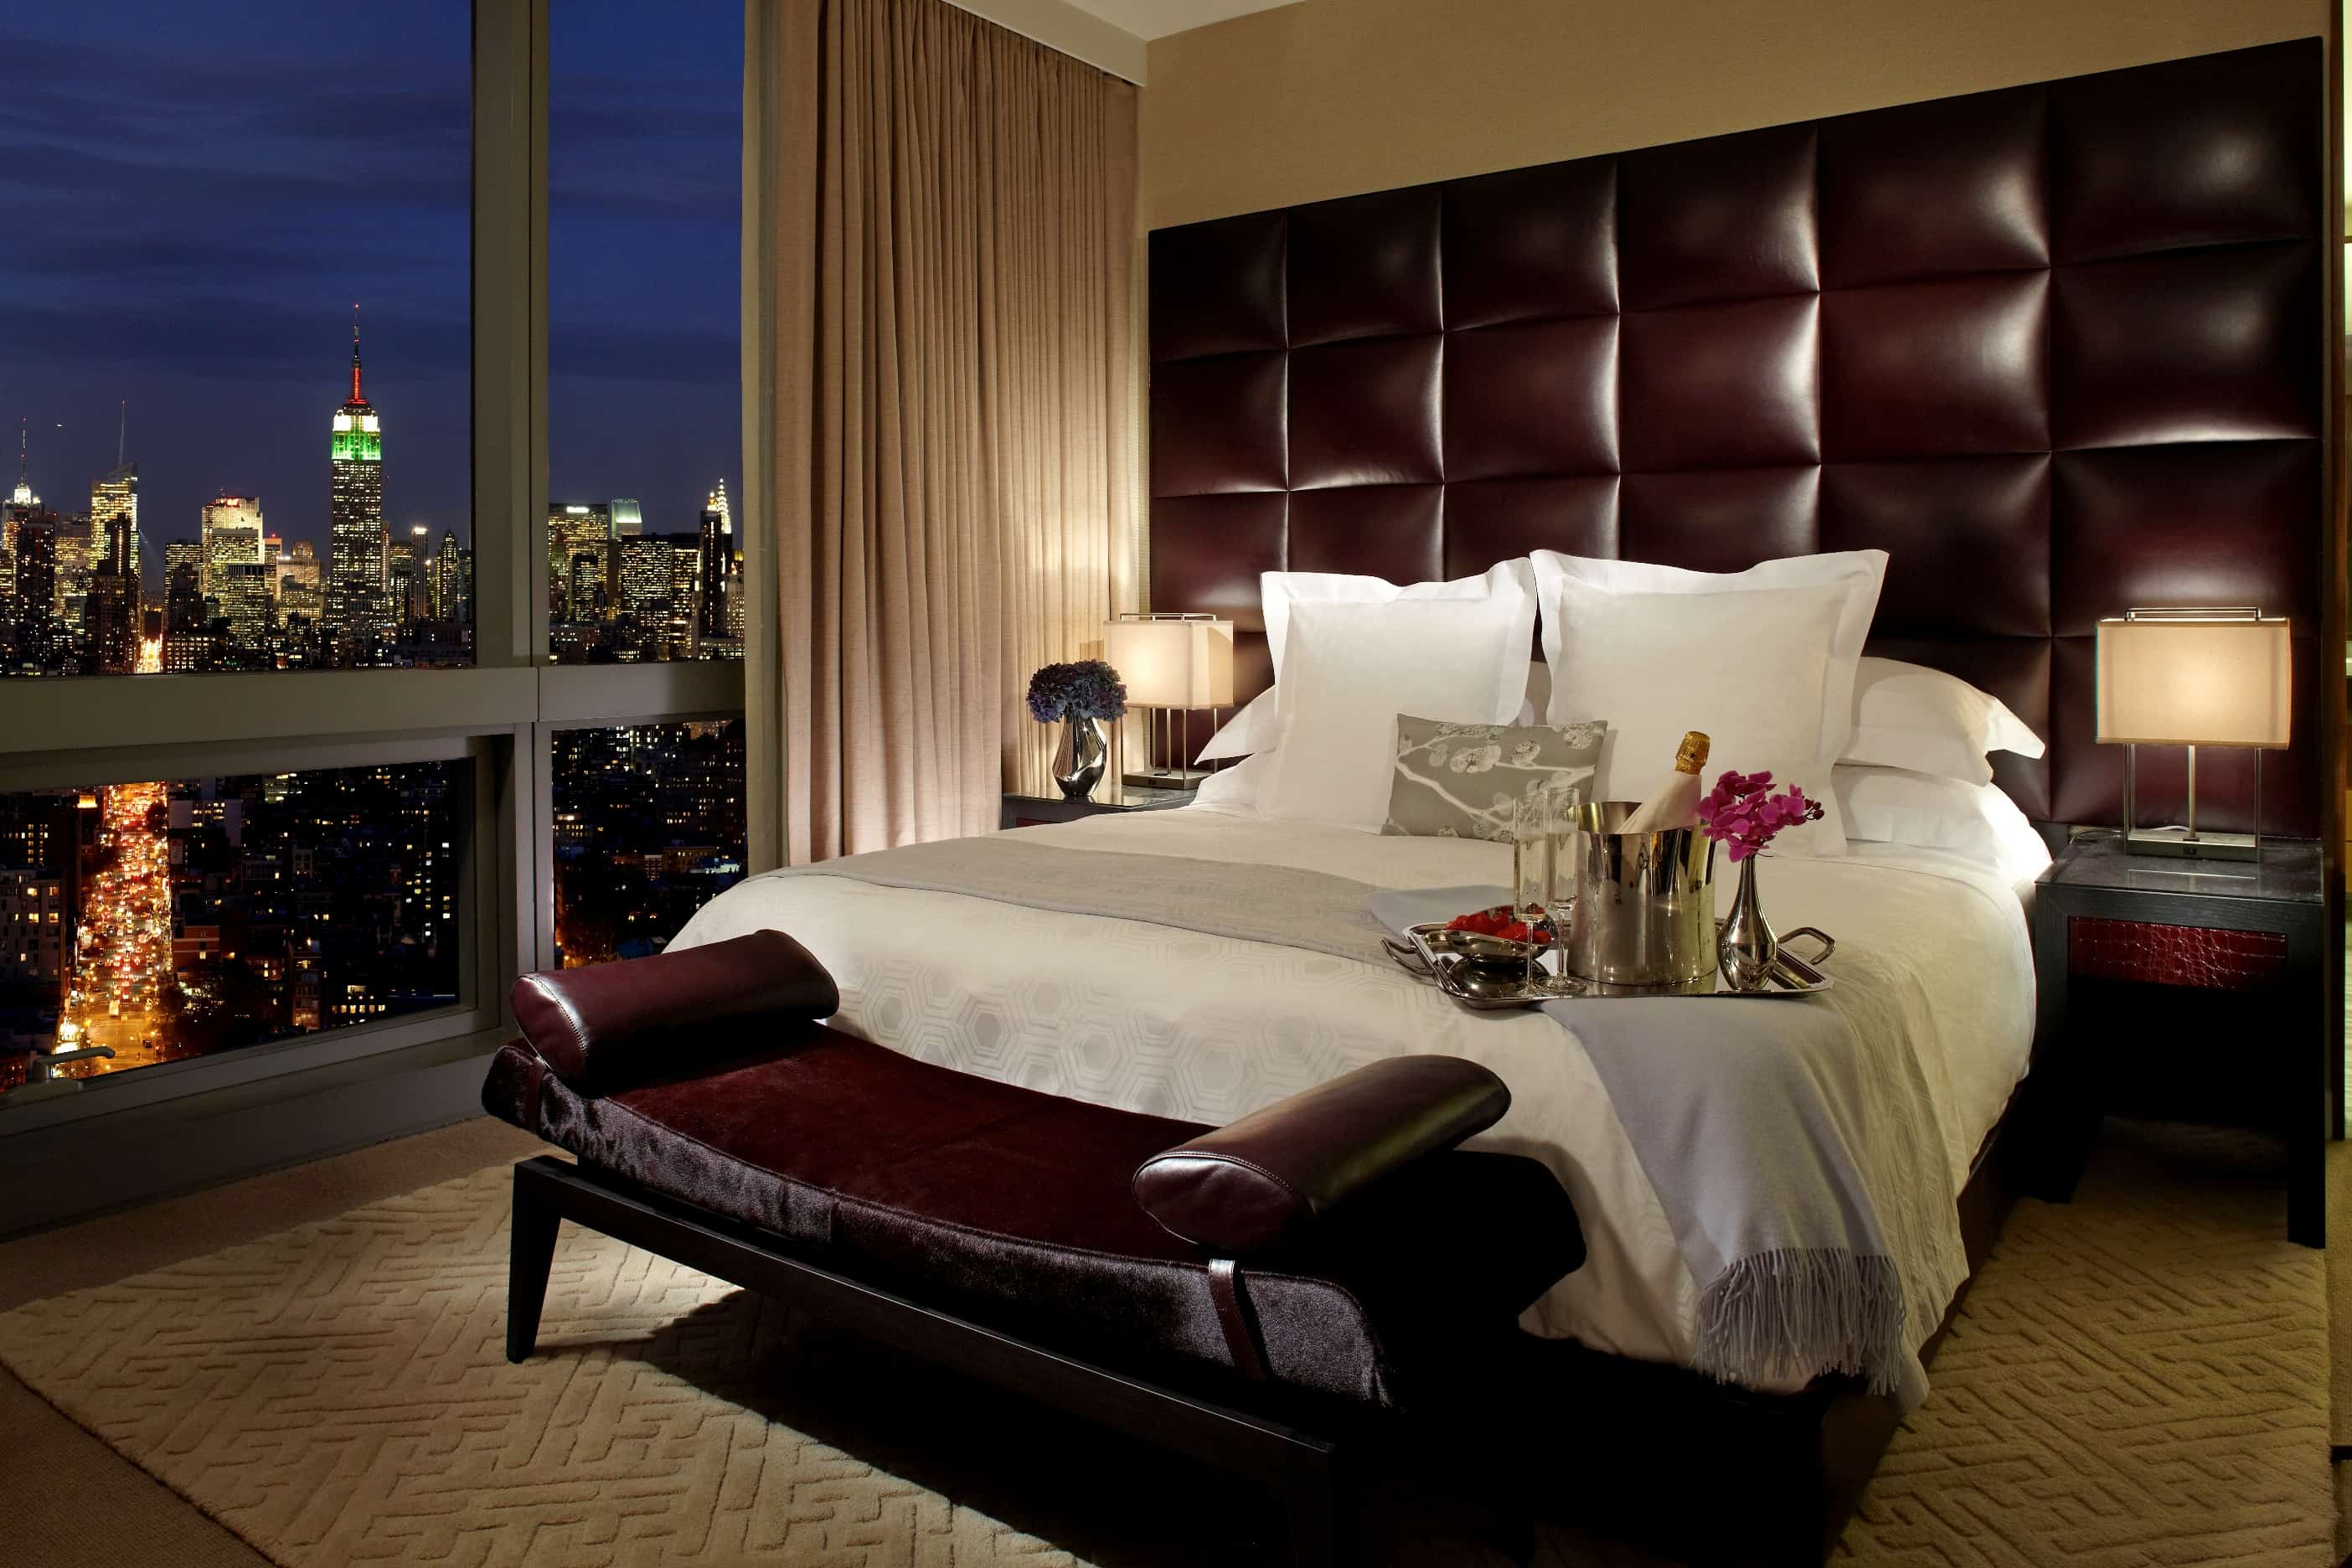 Trump Soho Hotel Penthouses in NYC